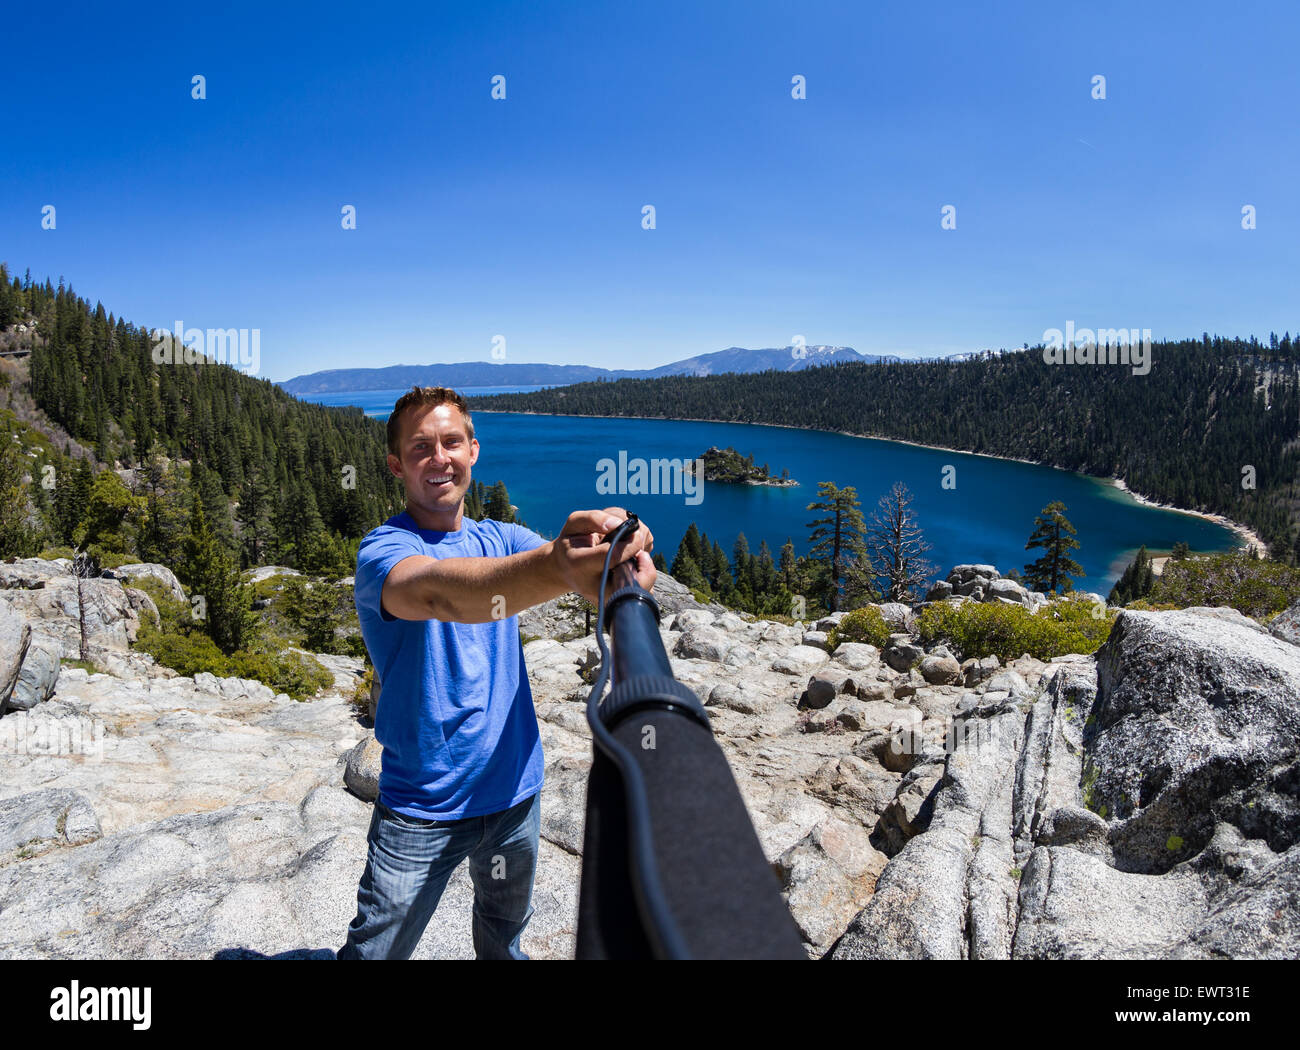 young man akin a selfie with Fannette Island and Emerald bay in the background - Stock Image